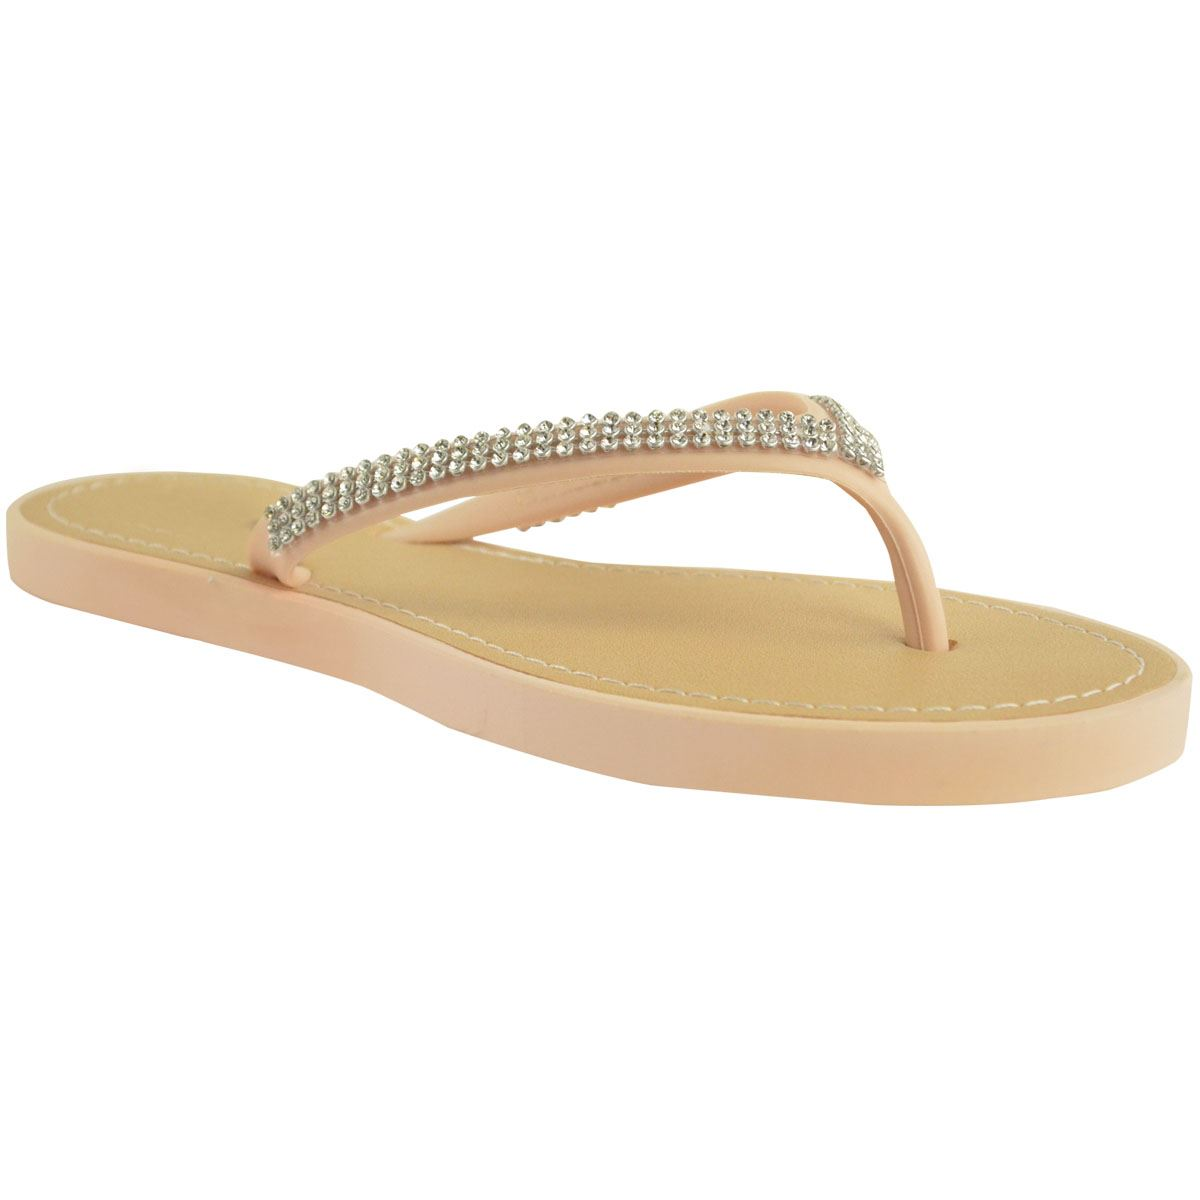 NEW-JELLY-SANDALS-WOMENS-LADIES-DIAMANTE-SUMMER-HOLIDAY-COMFORTS-FLIP-FLOPS-SIZE thumbnail 56